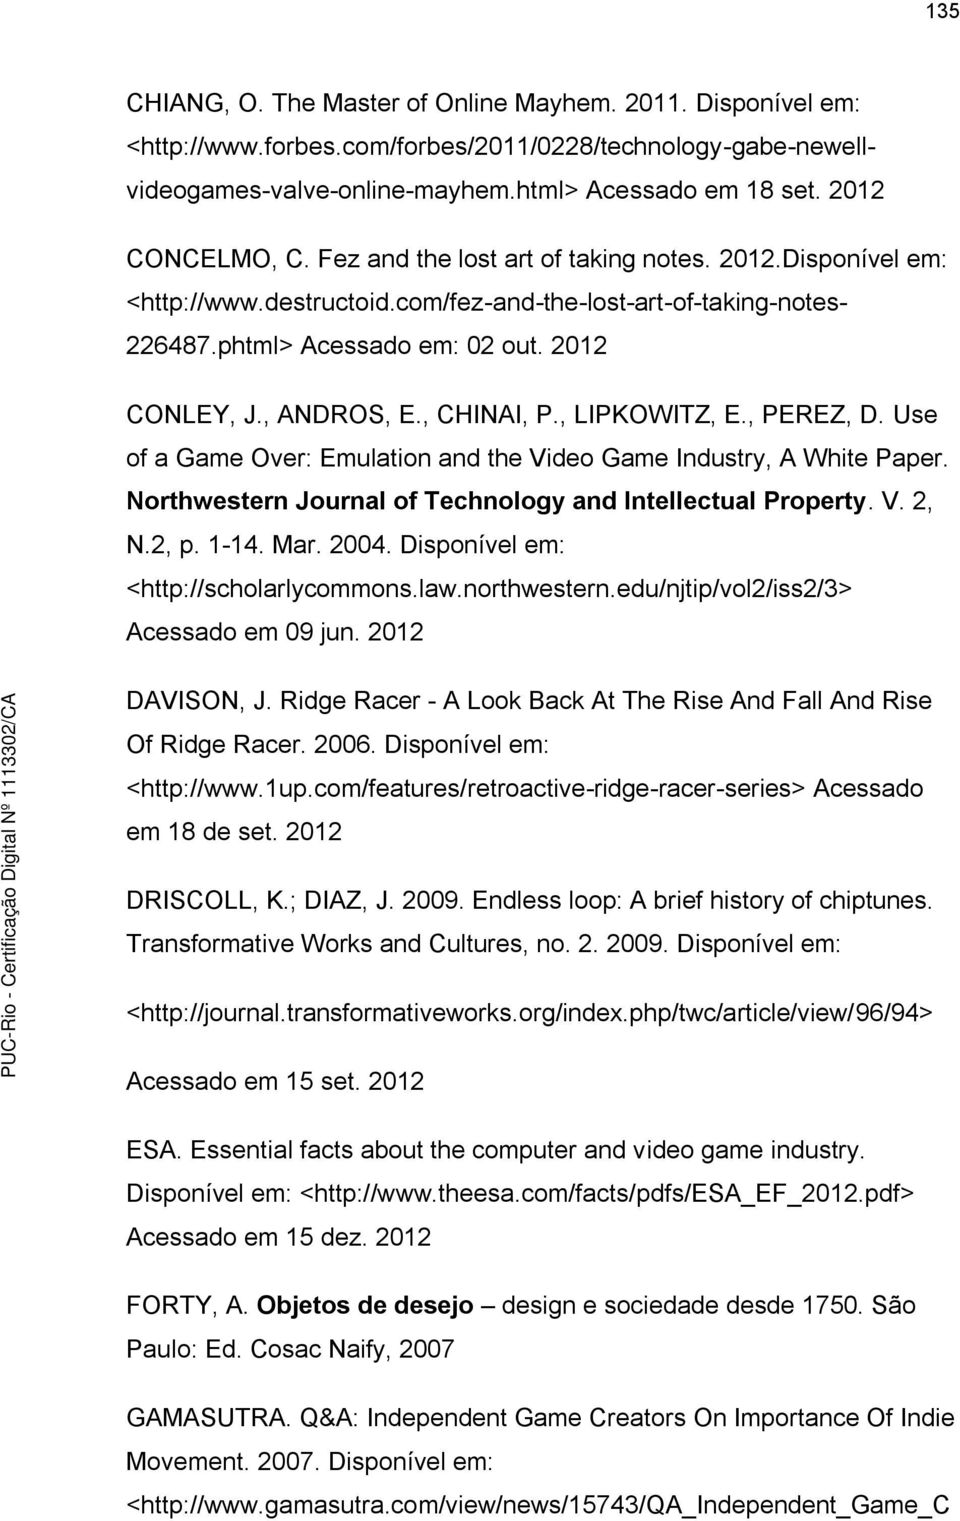 , PEREZ, D. Use of a Game Over: Emulation and the Video Game Industry, A White Paper. Northwestern Journal of Technology and Intellectual Property. V. 2, N.2, p. 1-14. Mar. 2004.